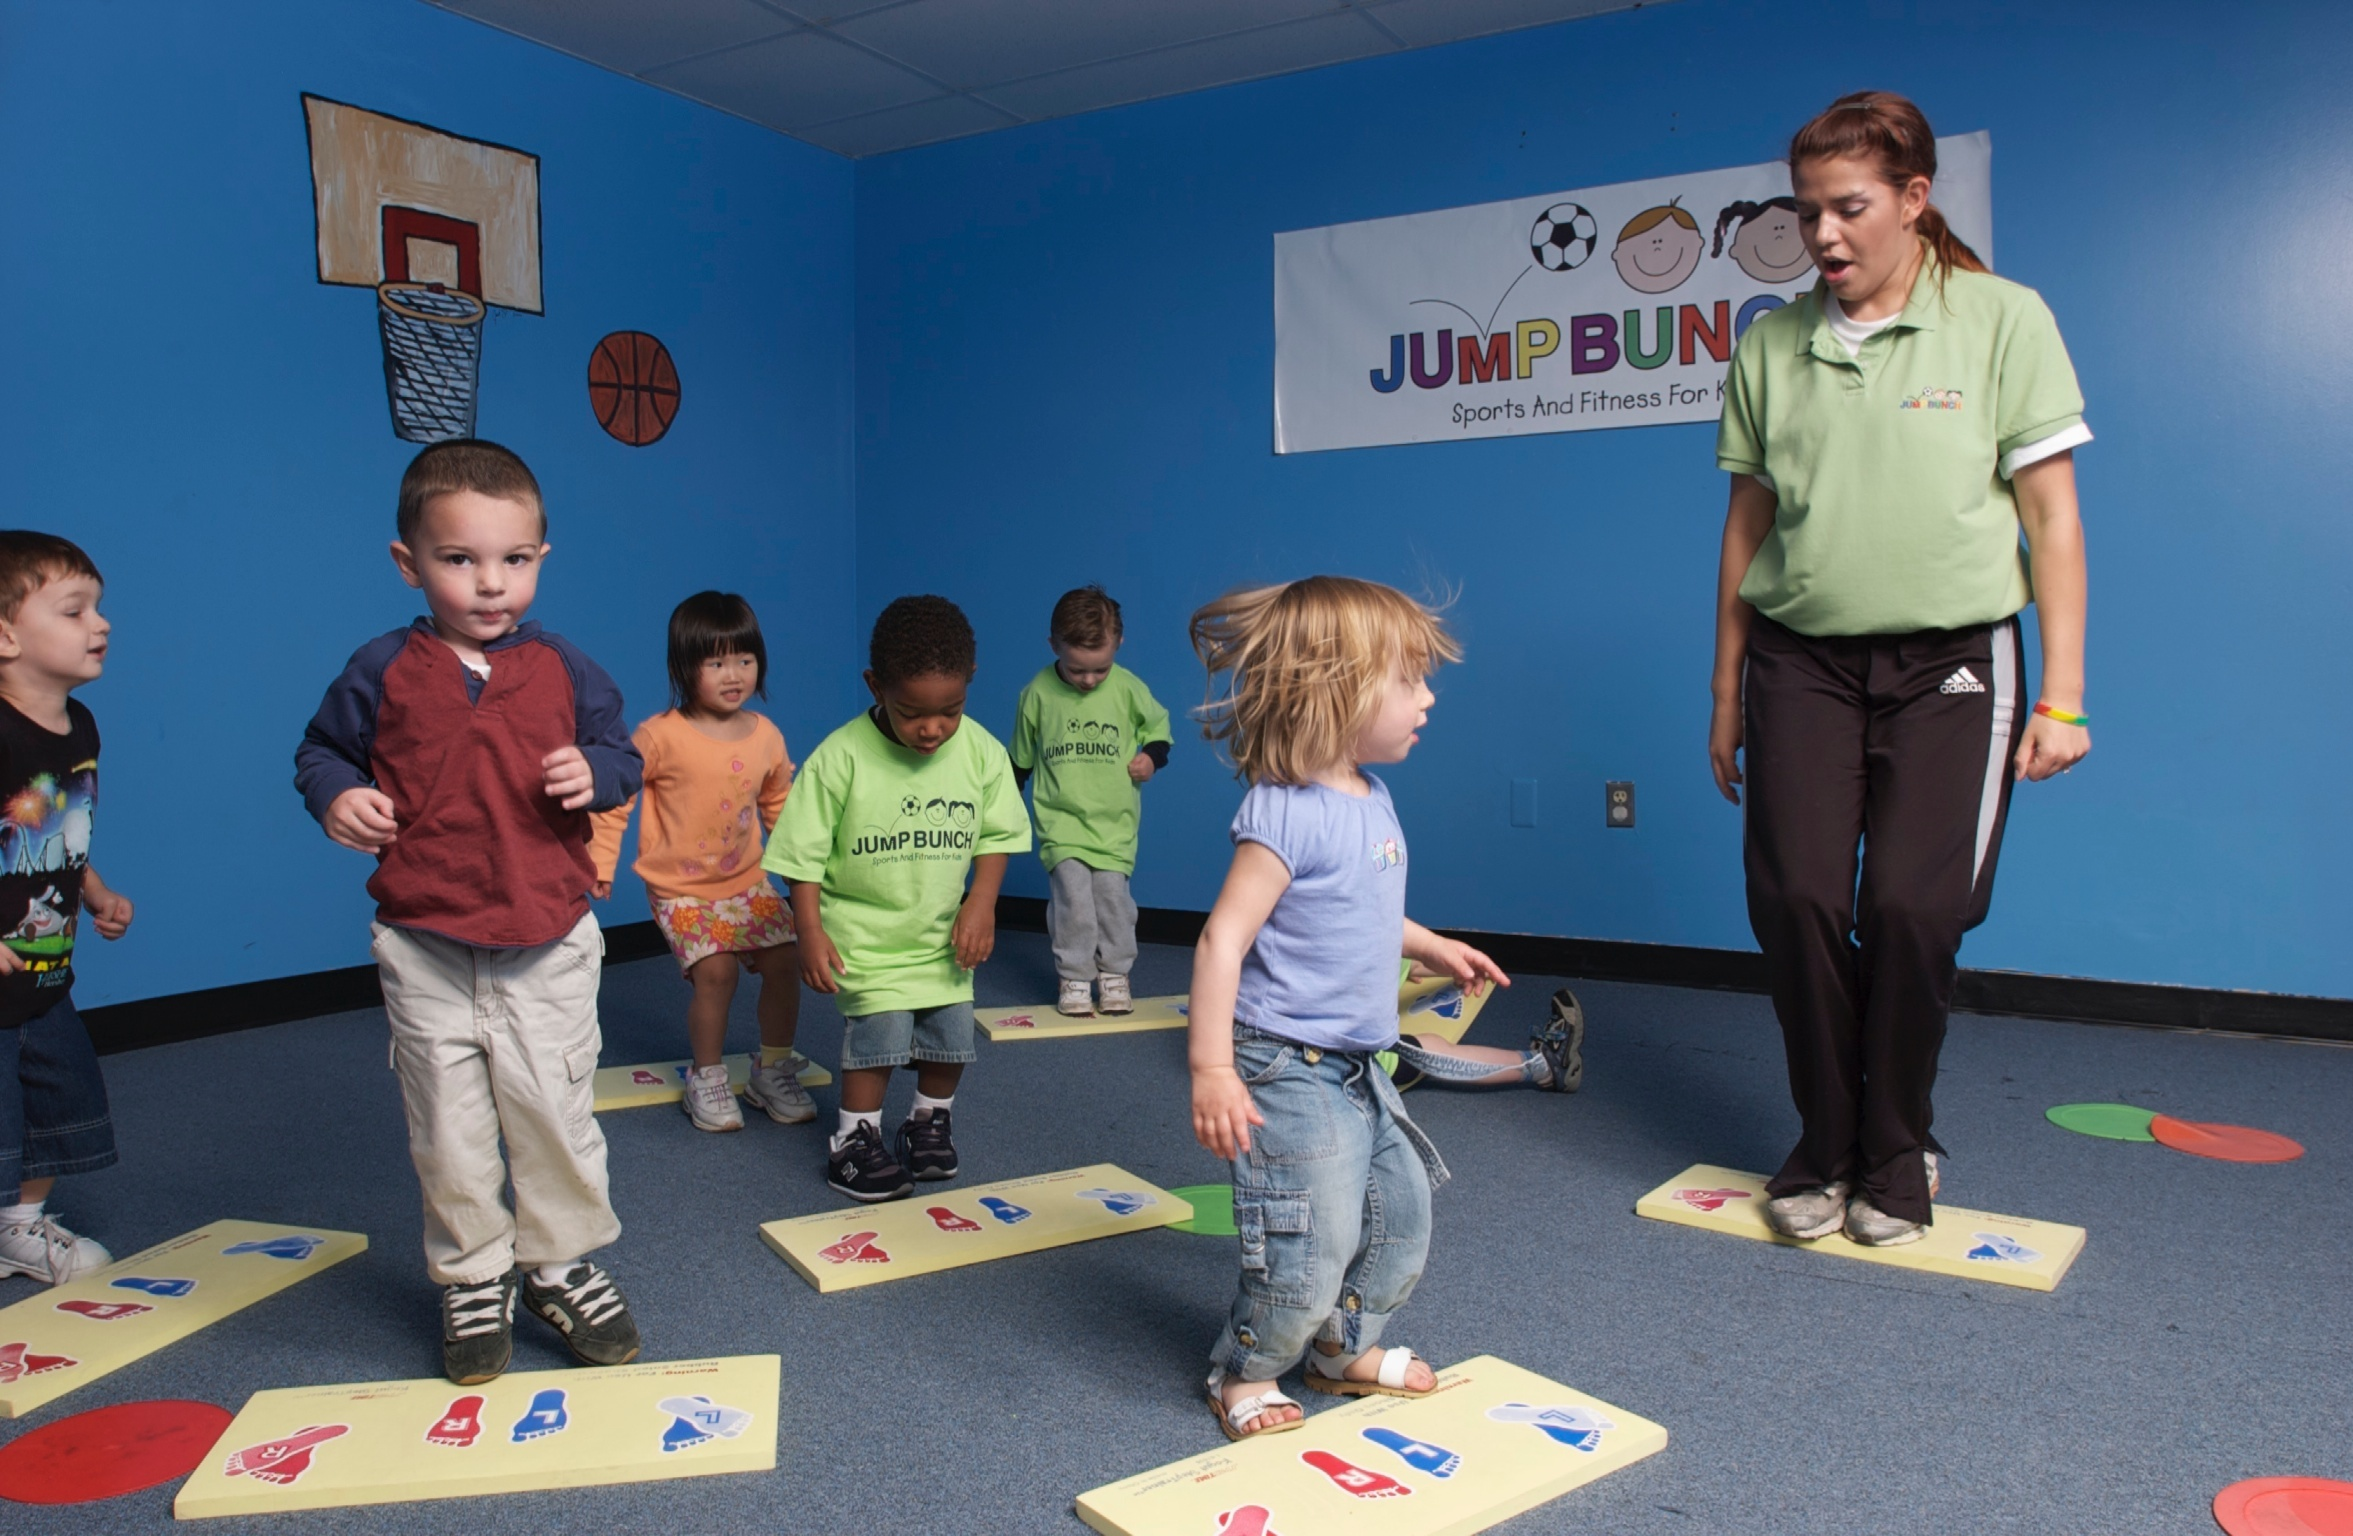 JumpBunch Anne Arundel Cty | A Friendly Introduction to Sports and Fitness!